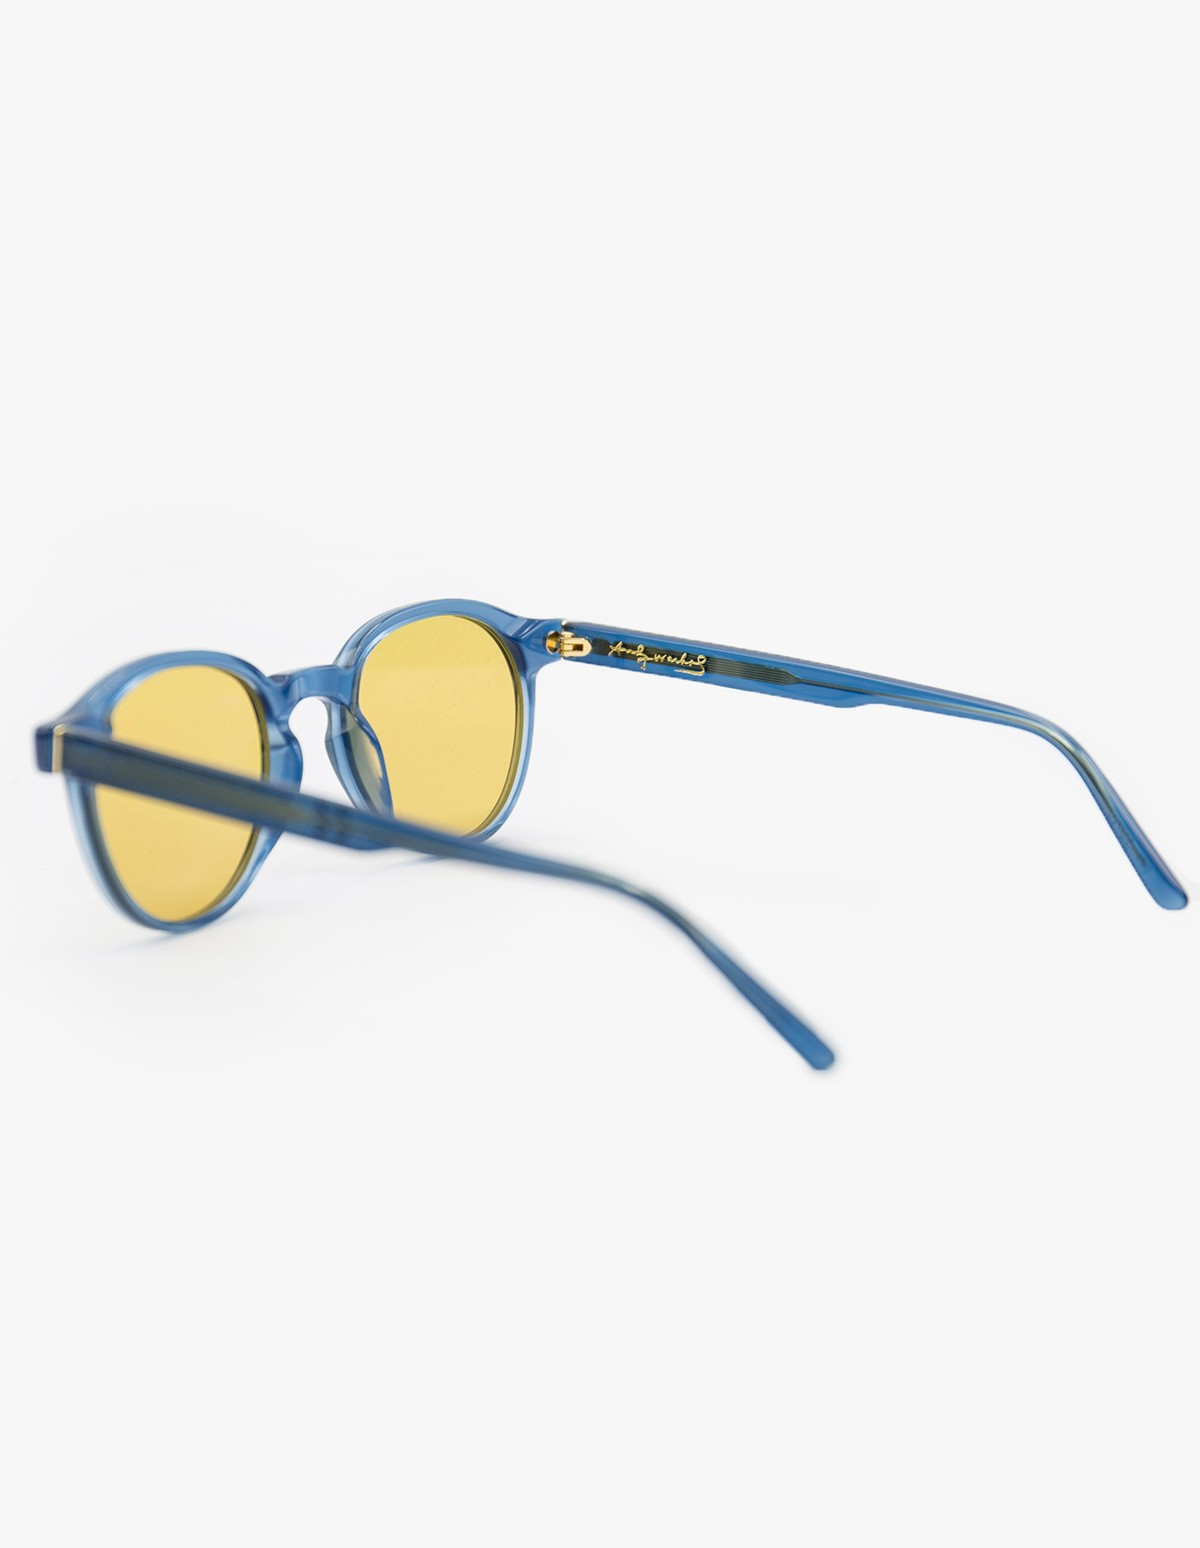 Retrosuperfuture Andy Warhol The Iconic Series Sunglasses in Crystal Azure